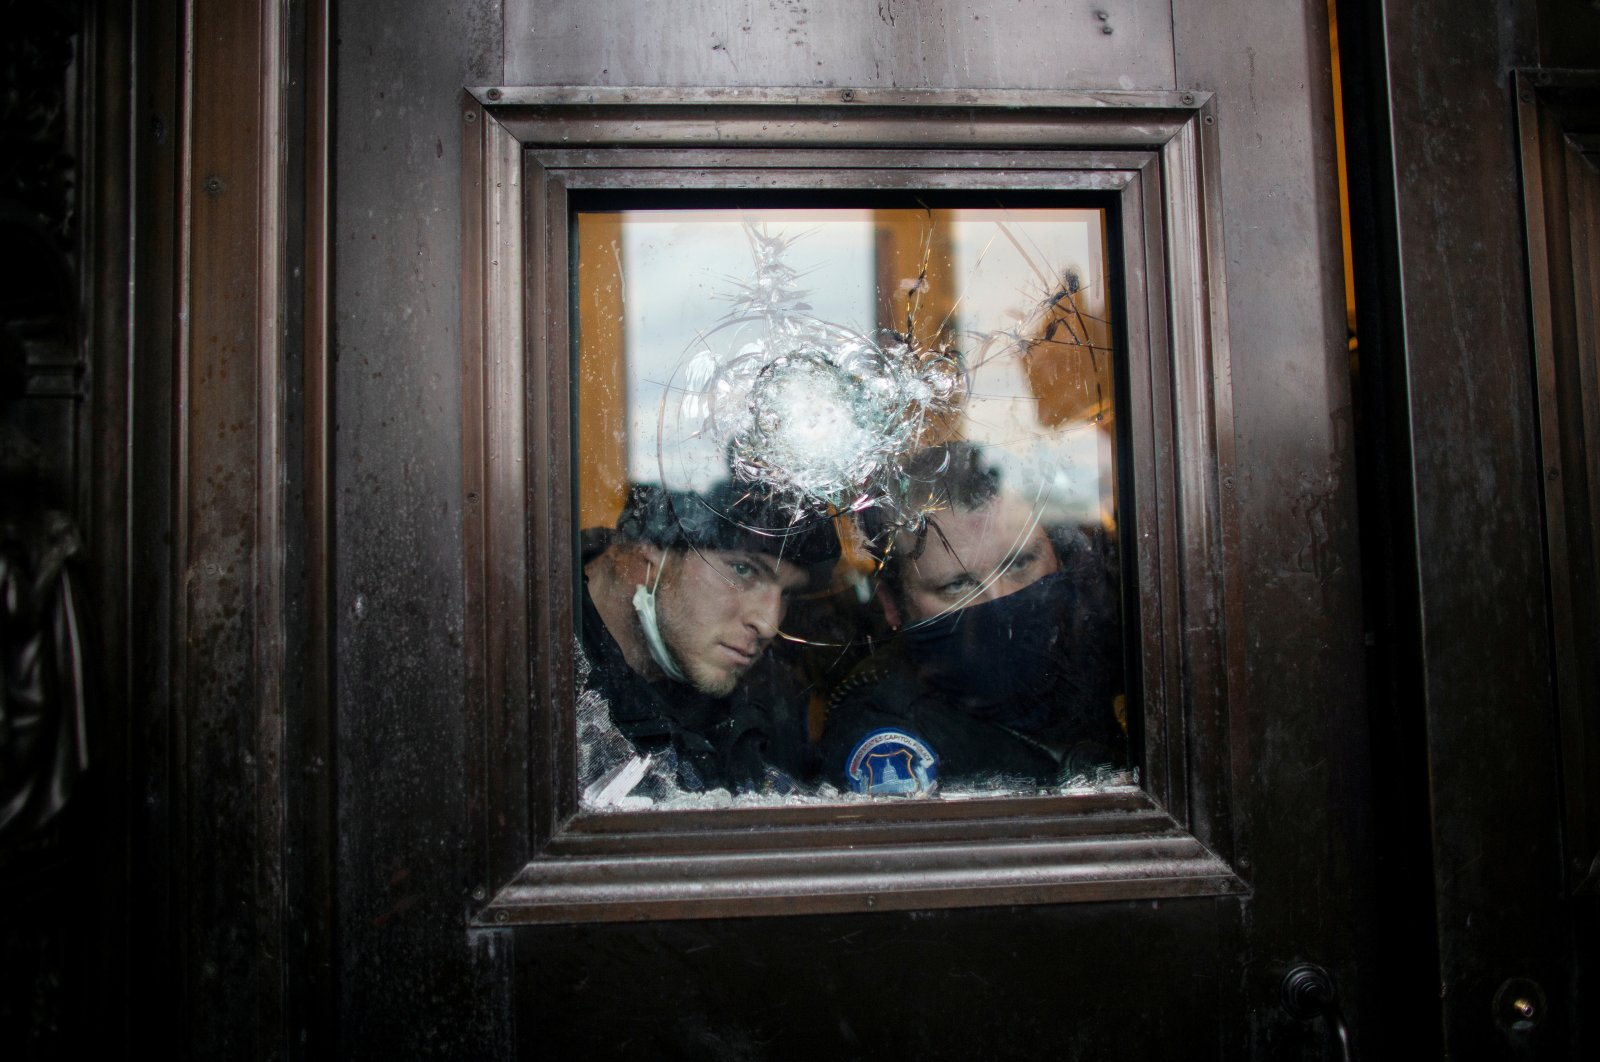 Members of the Capitol police look through a smashed window as pro-Trump protesters rally to contest the certification of the 2020 U.S. presidential election results by the U.S. Congress, at the U.S. Capitol Building in Washington, D.C., U.S. Jan. 6, 2021. (Reuters Photo)